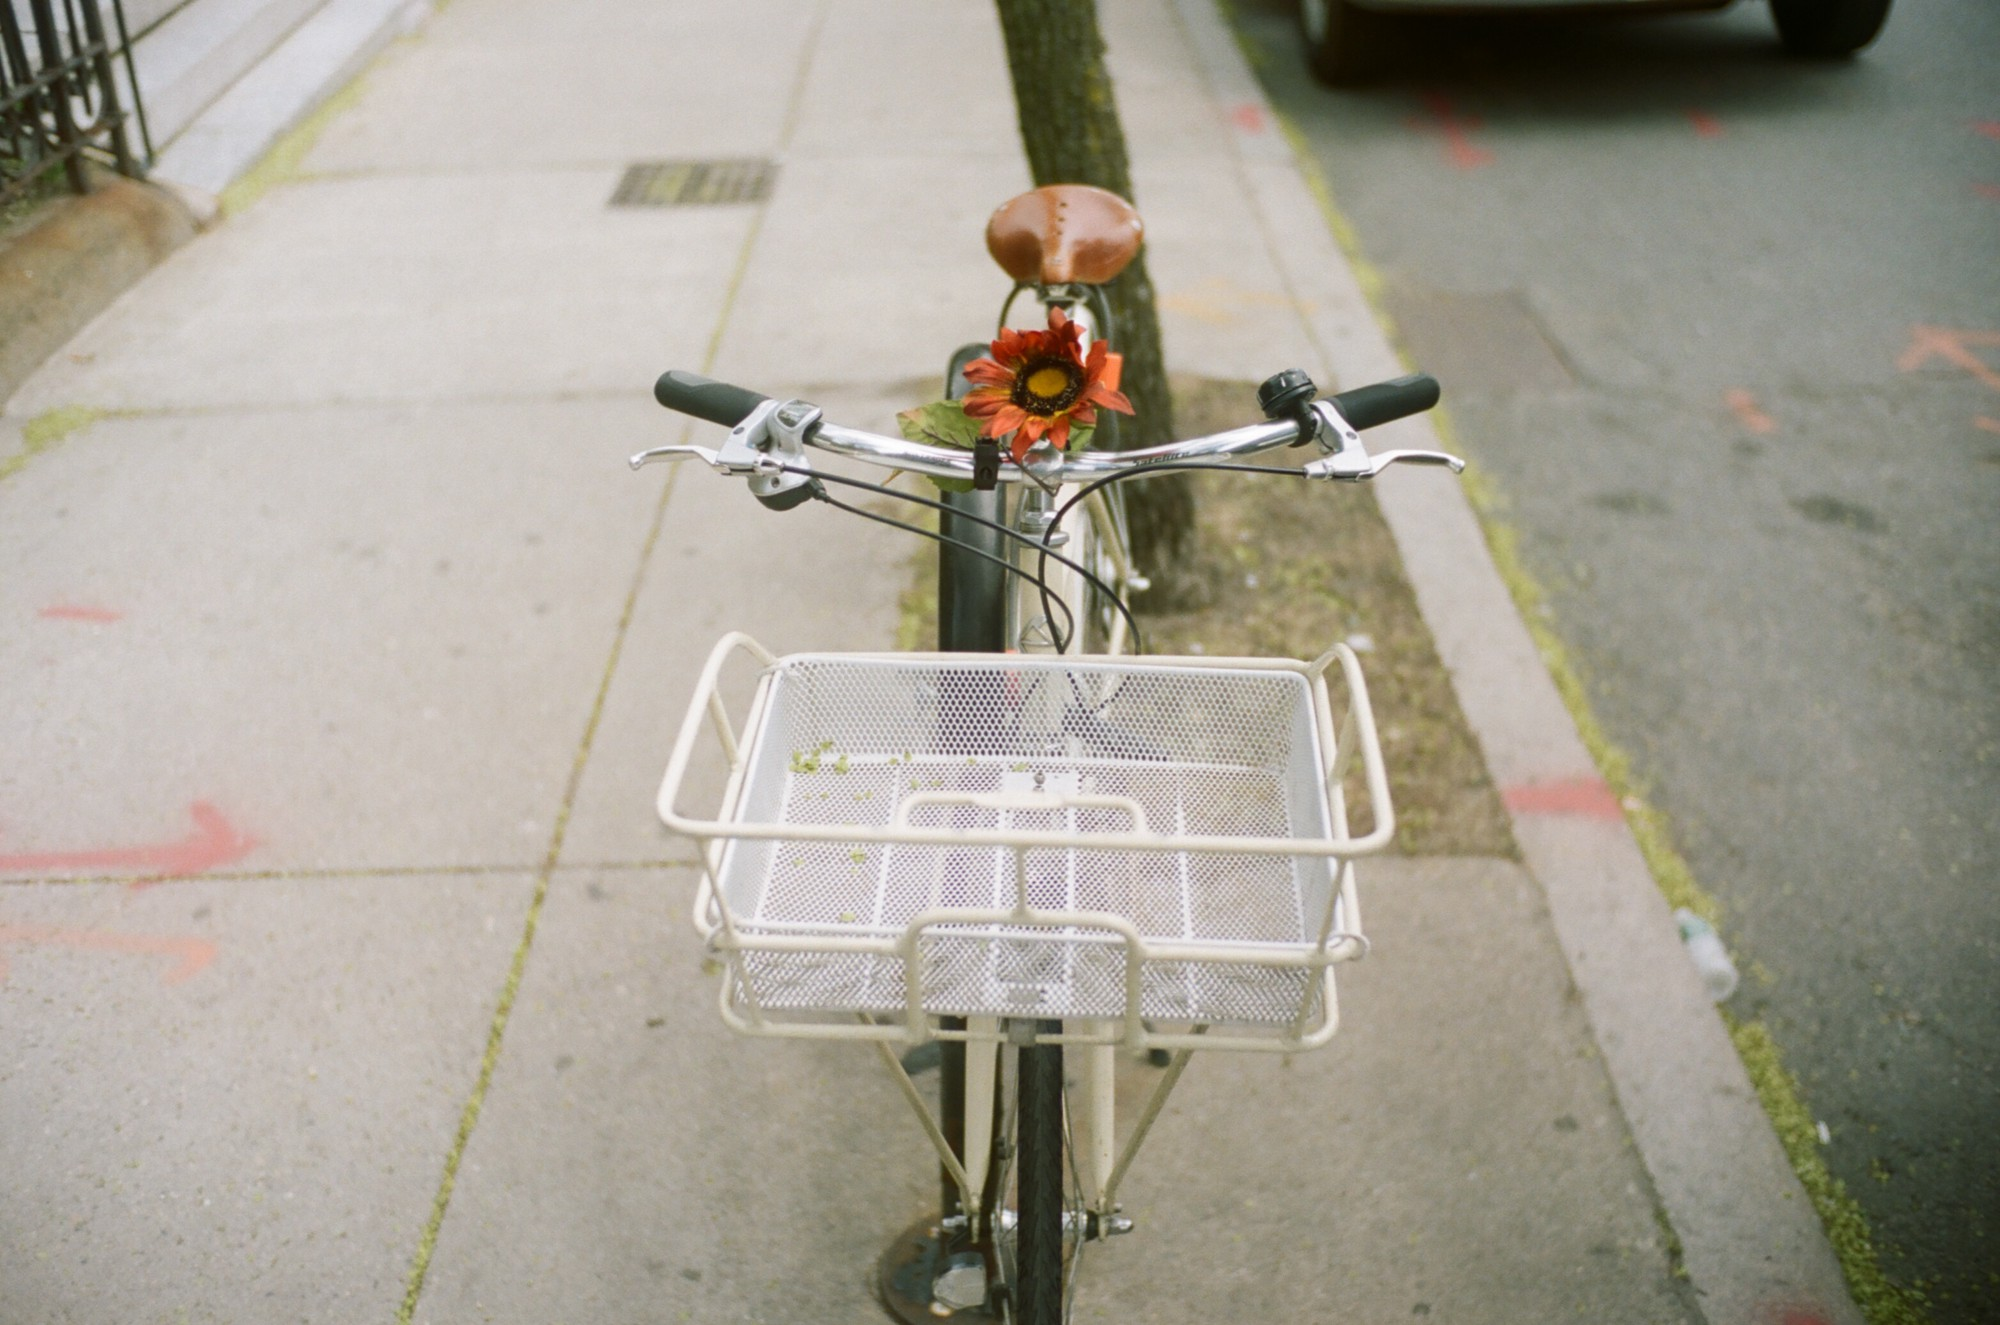 Shot of a parked bike on a sidewalk. A basket is on the front of the bike.